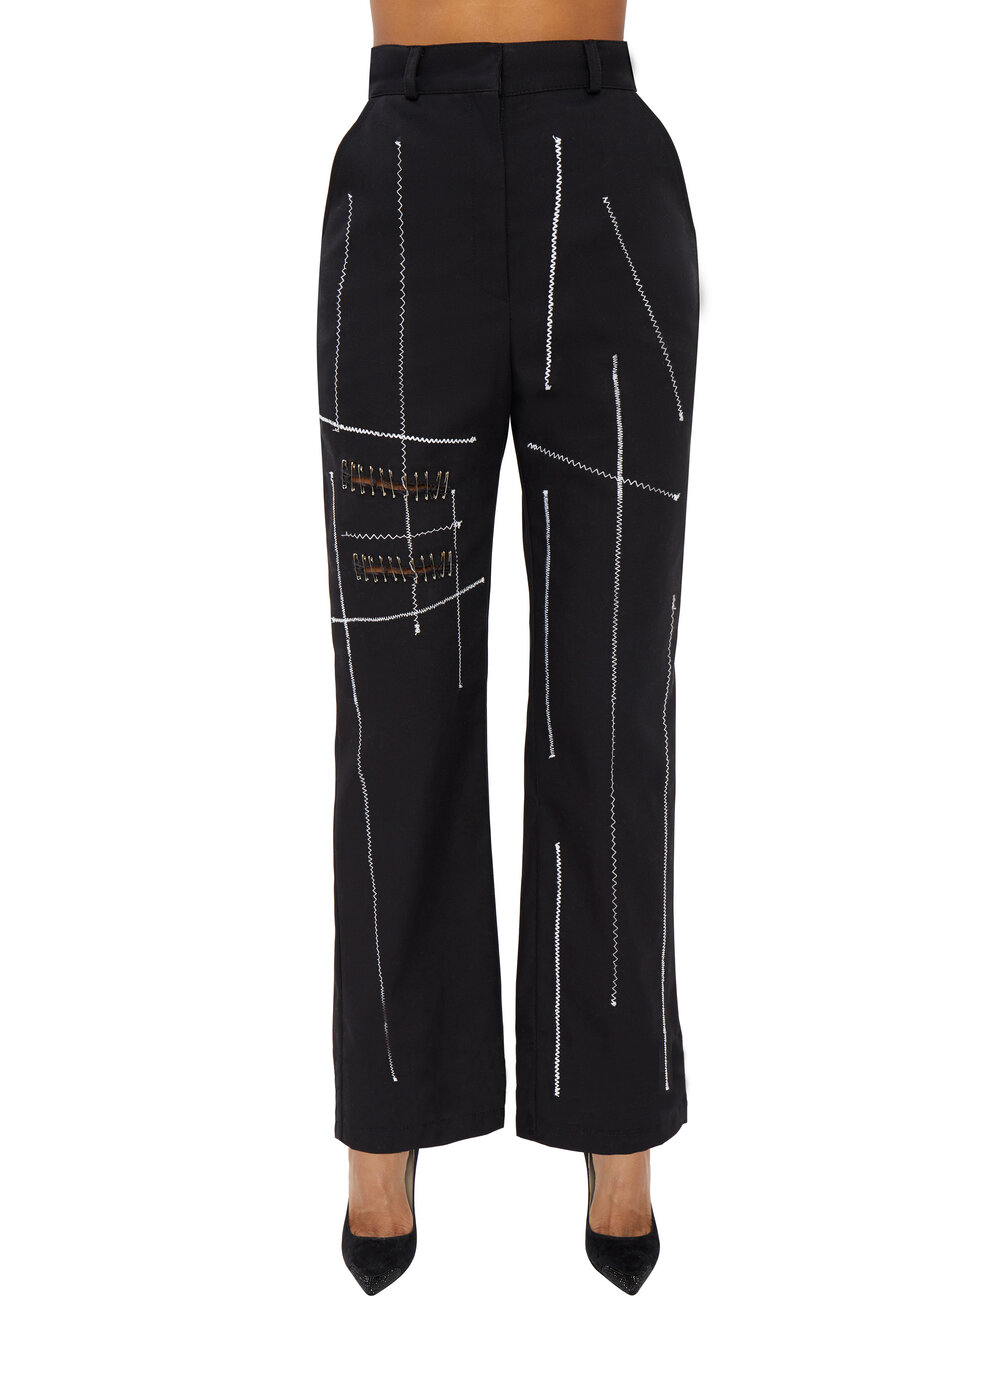 ZIG ZAG WIDE TROUSERS by Danielle Guizio, available on danielleguiziony.com for $410 Kylie Jenner Pants SIMILAR PRODUCT